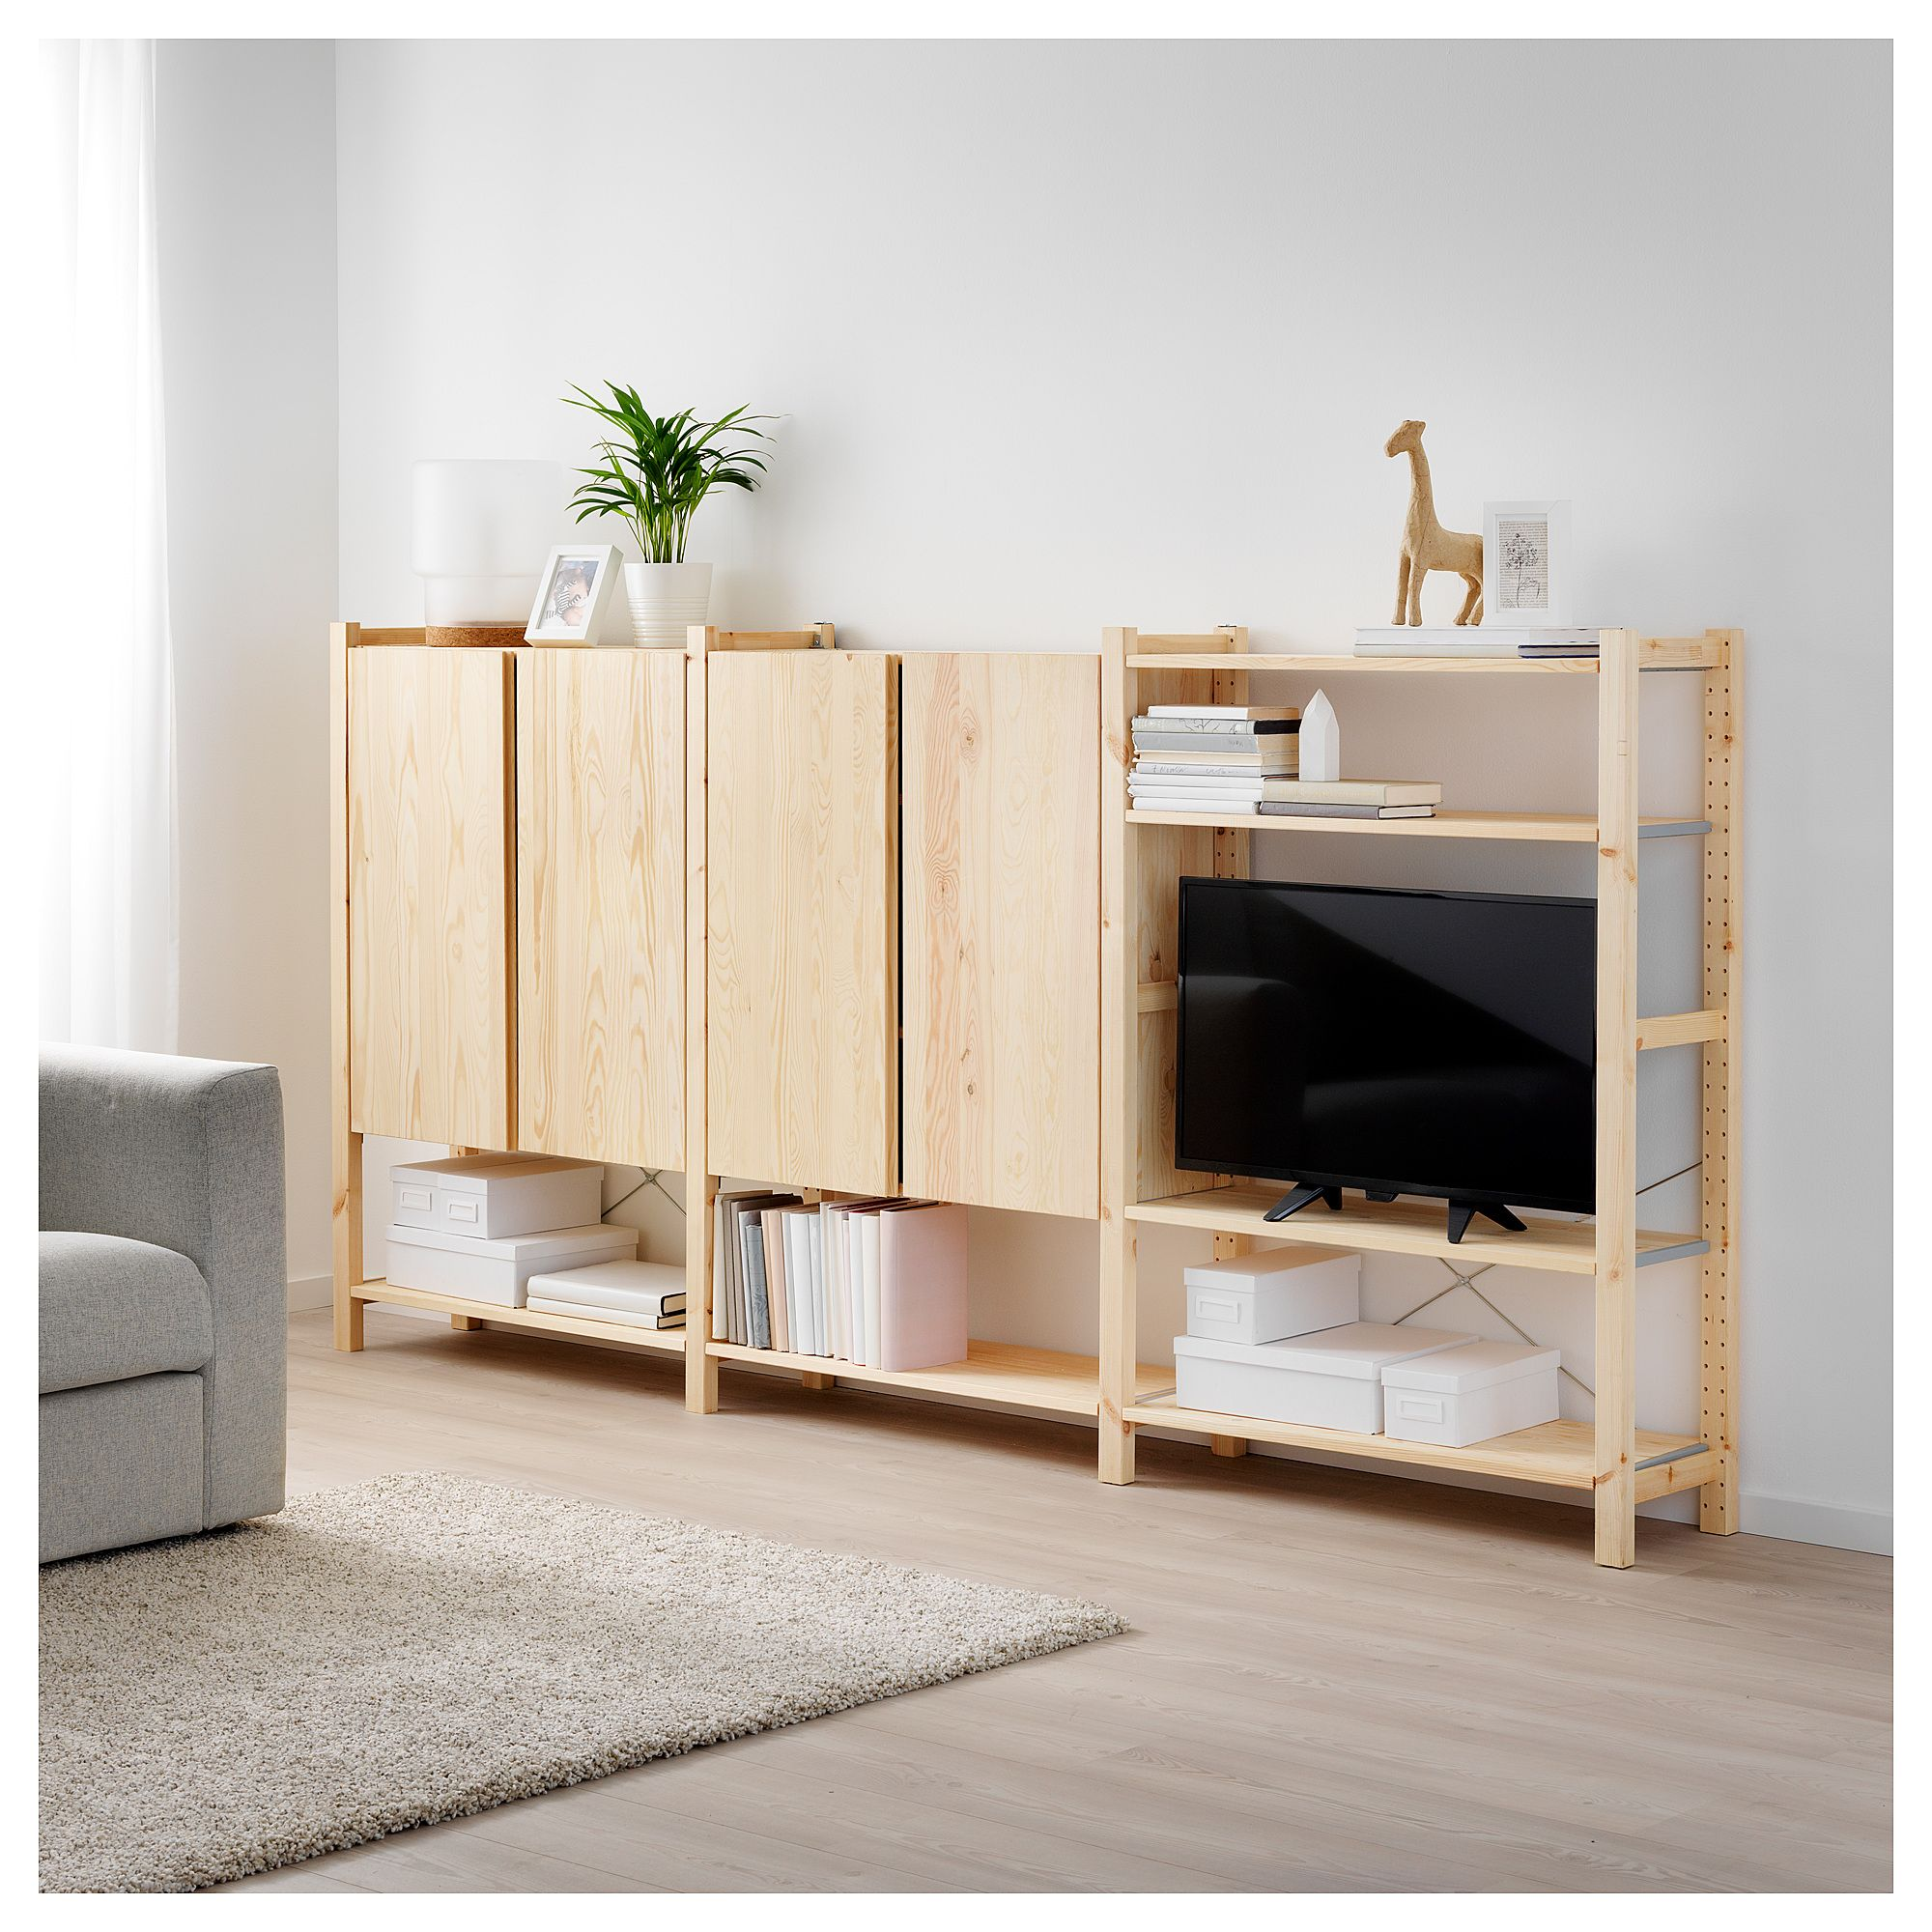 40+ Storage cabinets for living room ikea information